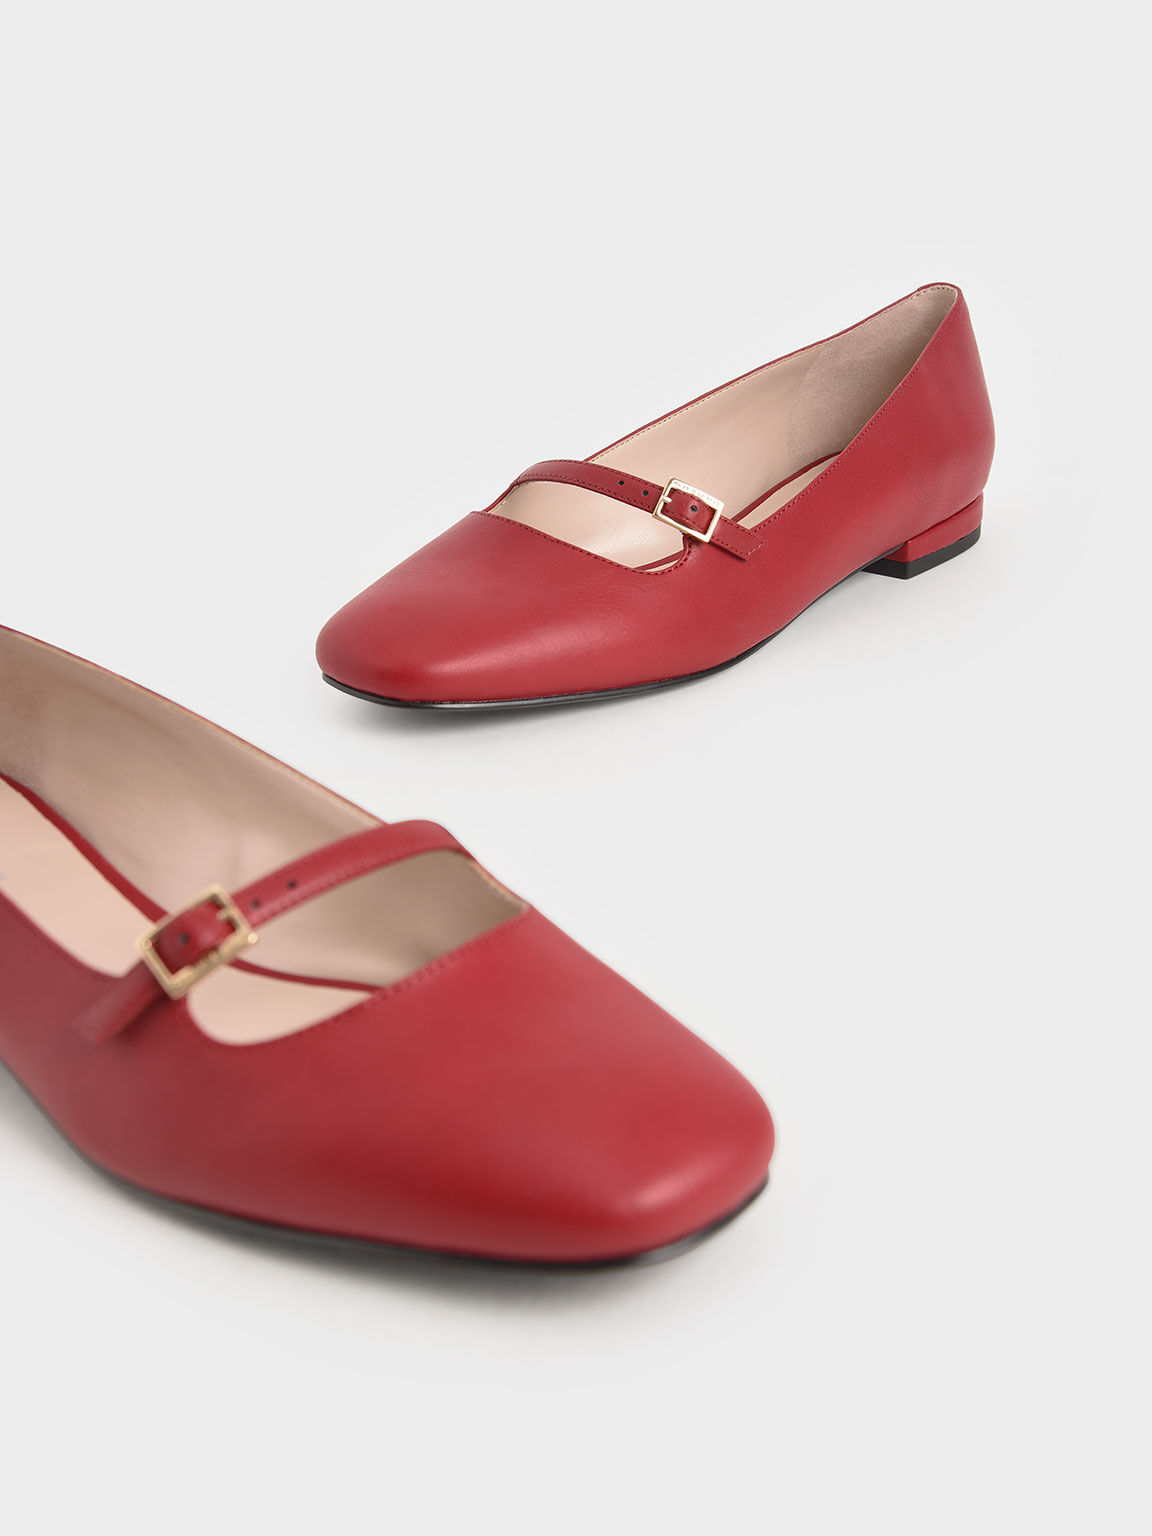 Mary Jane Flats, Red, hi-res